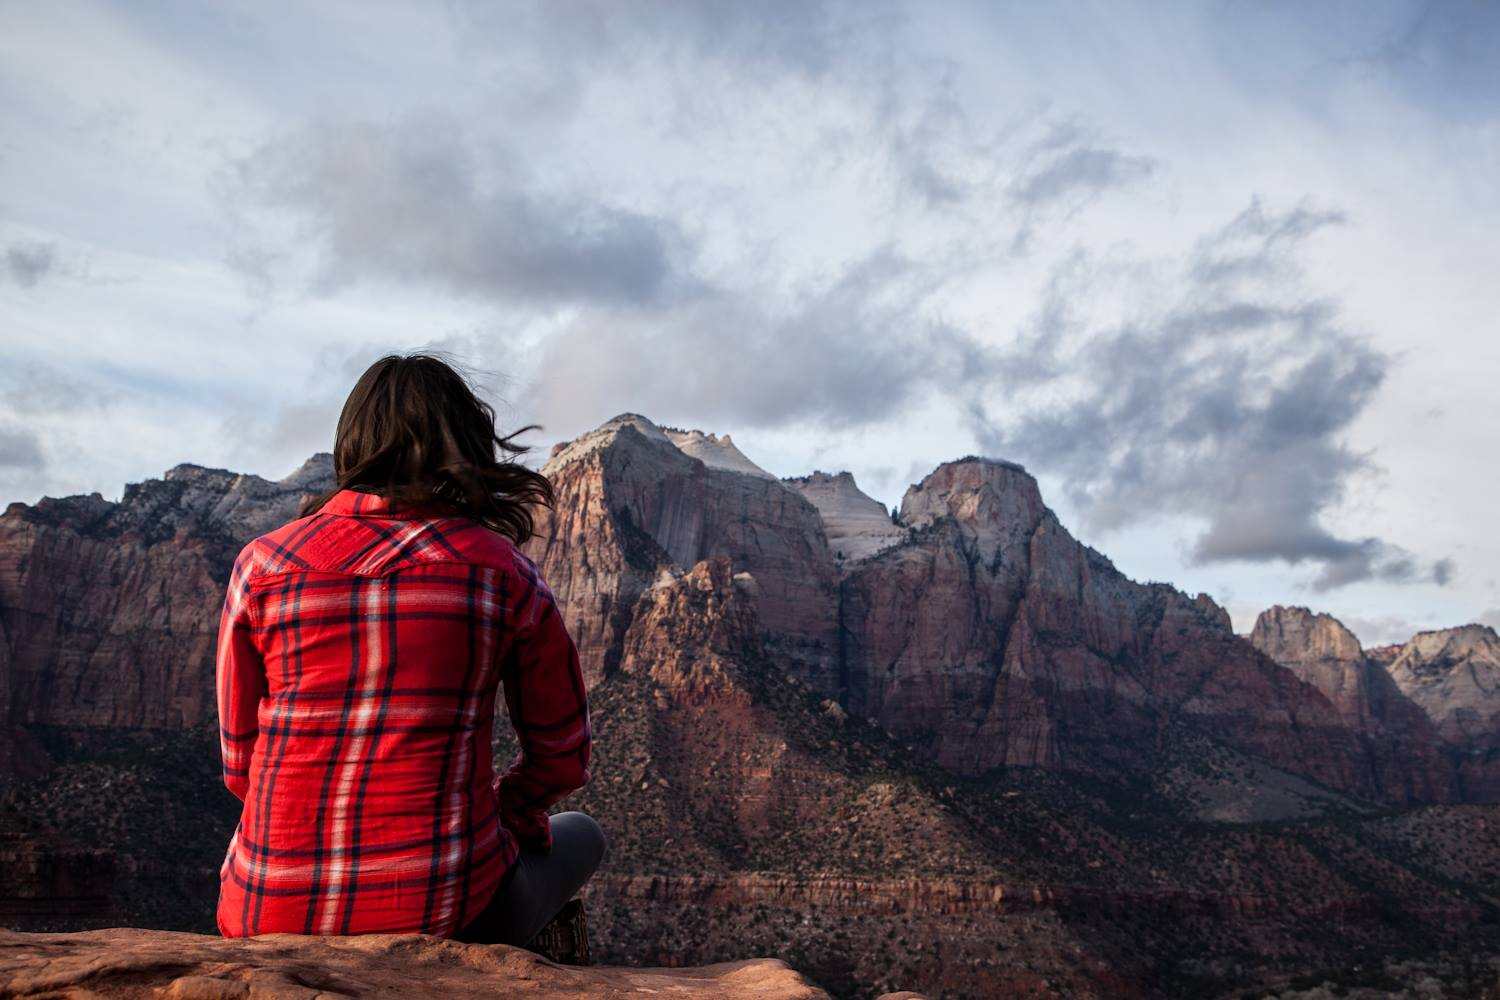 Planning to conquer mountains in Zion National Park.